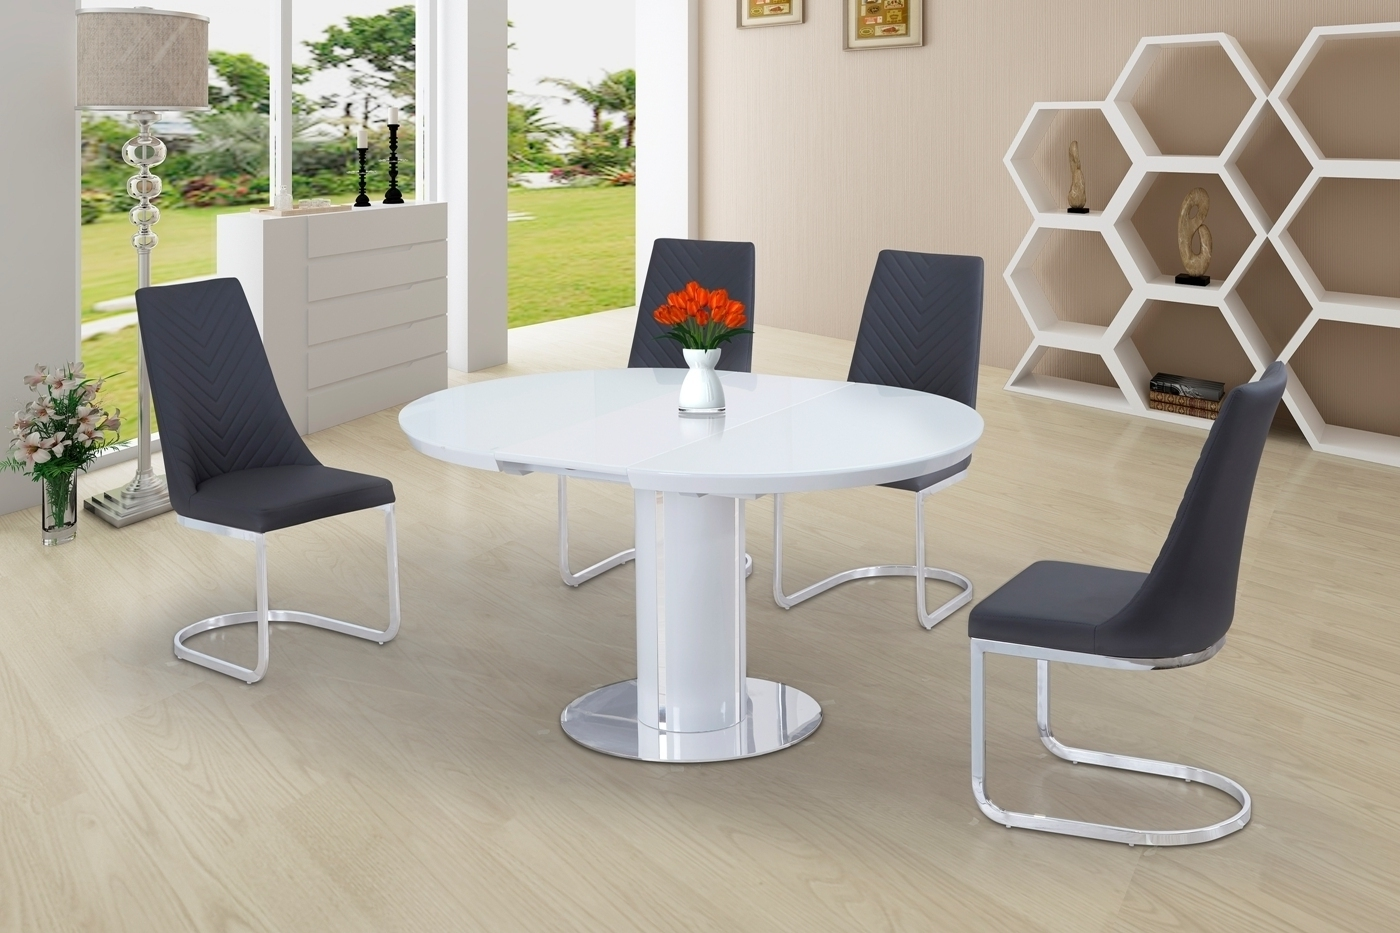 Round White Glass High Gloss Dining Table And 6 Grey Chairs Throughout Best And Newest White Gloss Dining Tables And 6 Chairs (View 8 of 25)